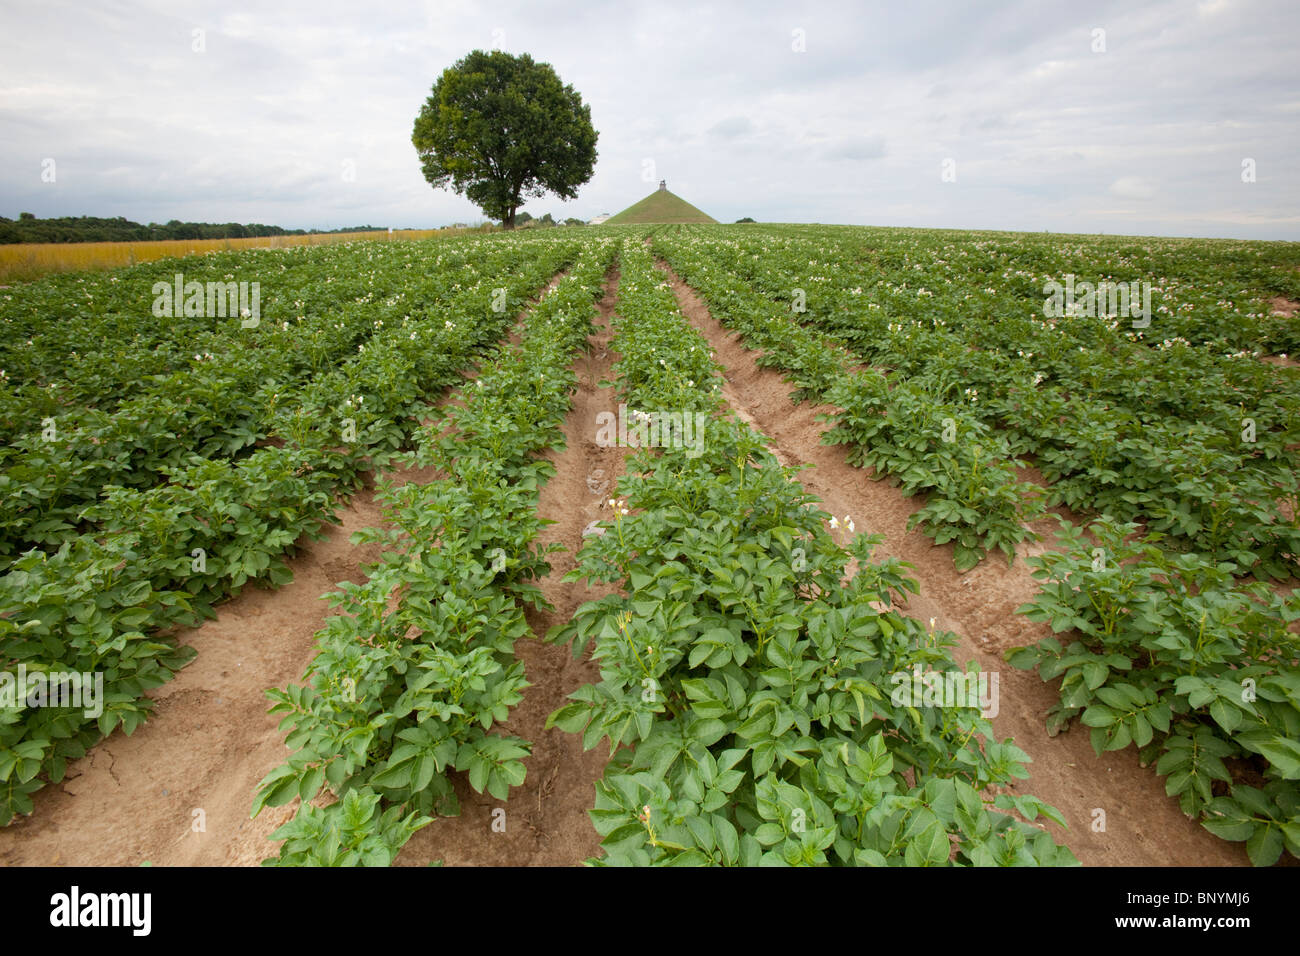 Wide angle shot of potato crops on farmland with the Lion Mound monument showing in the background, Waterloo, Belgium. - Stock Image